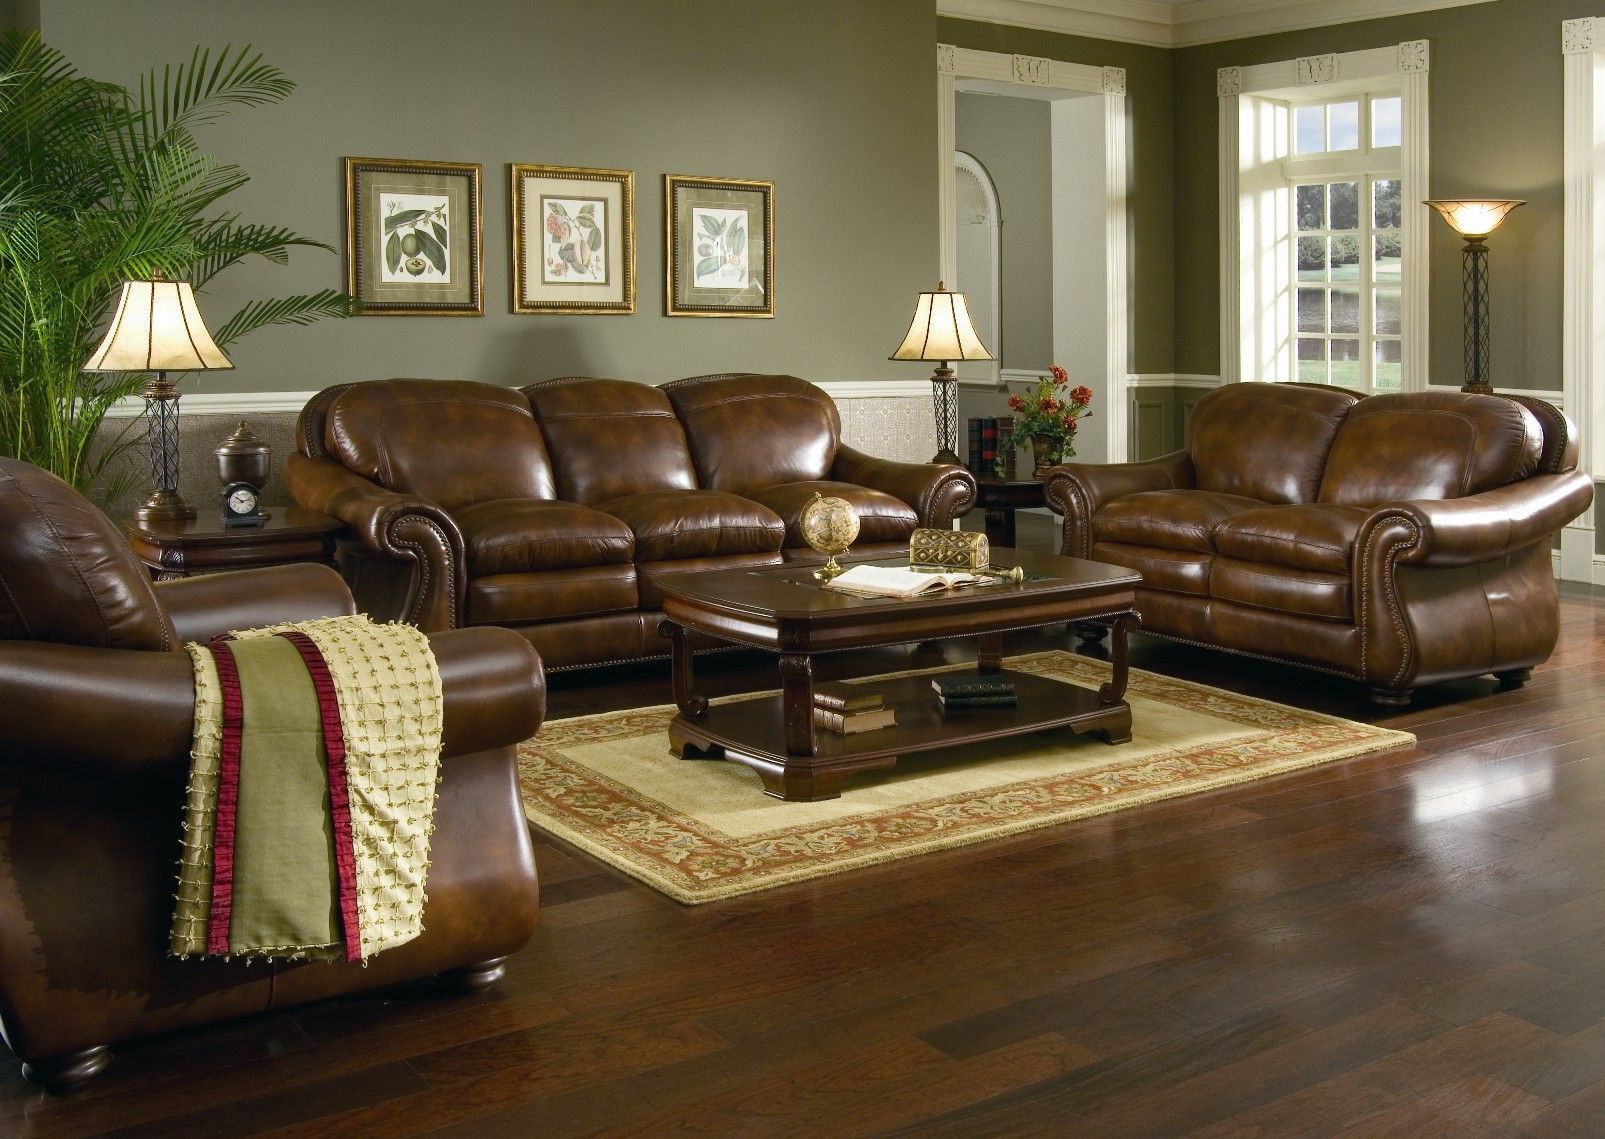 Living Room Furniture Leather best 25+ green leather sofa ideas on pinterest | green leather